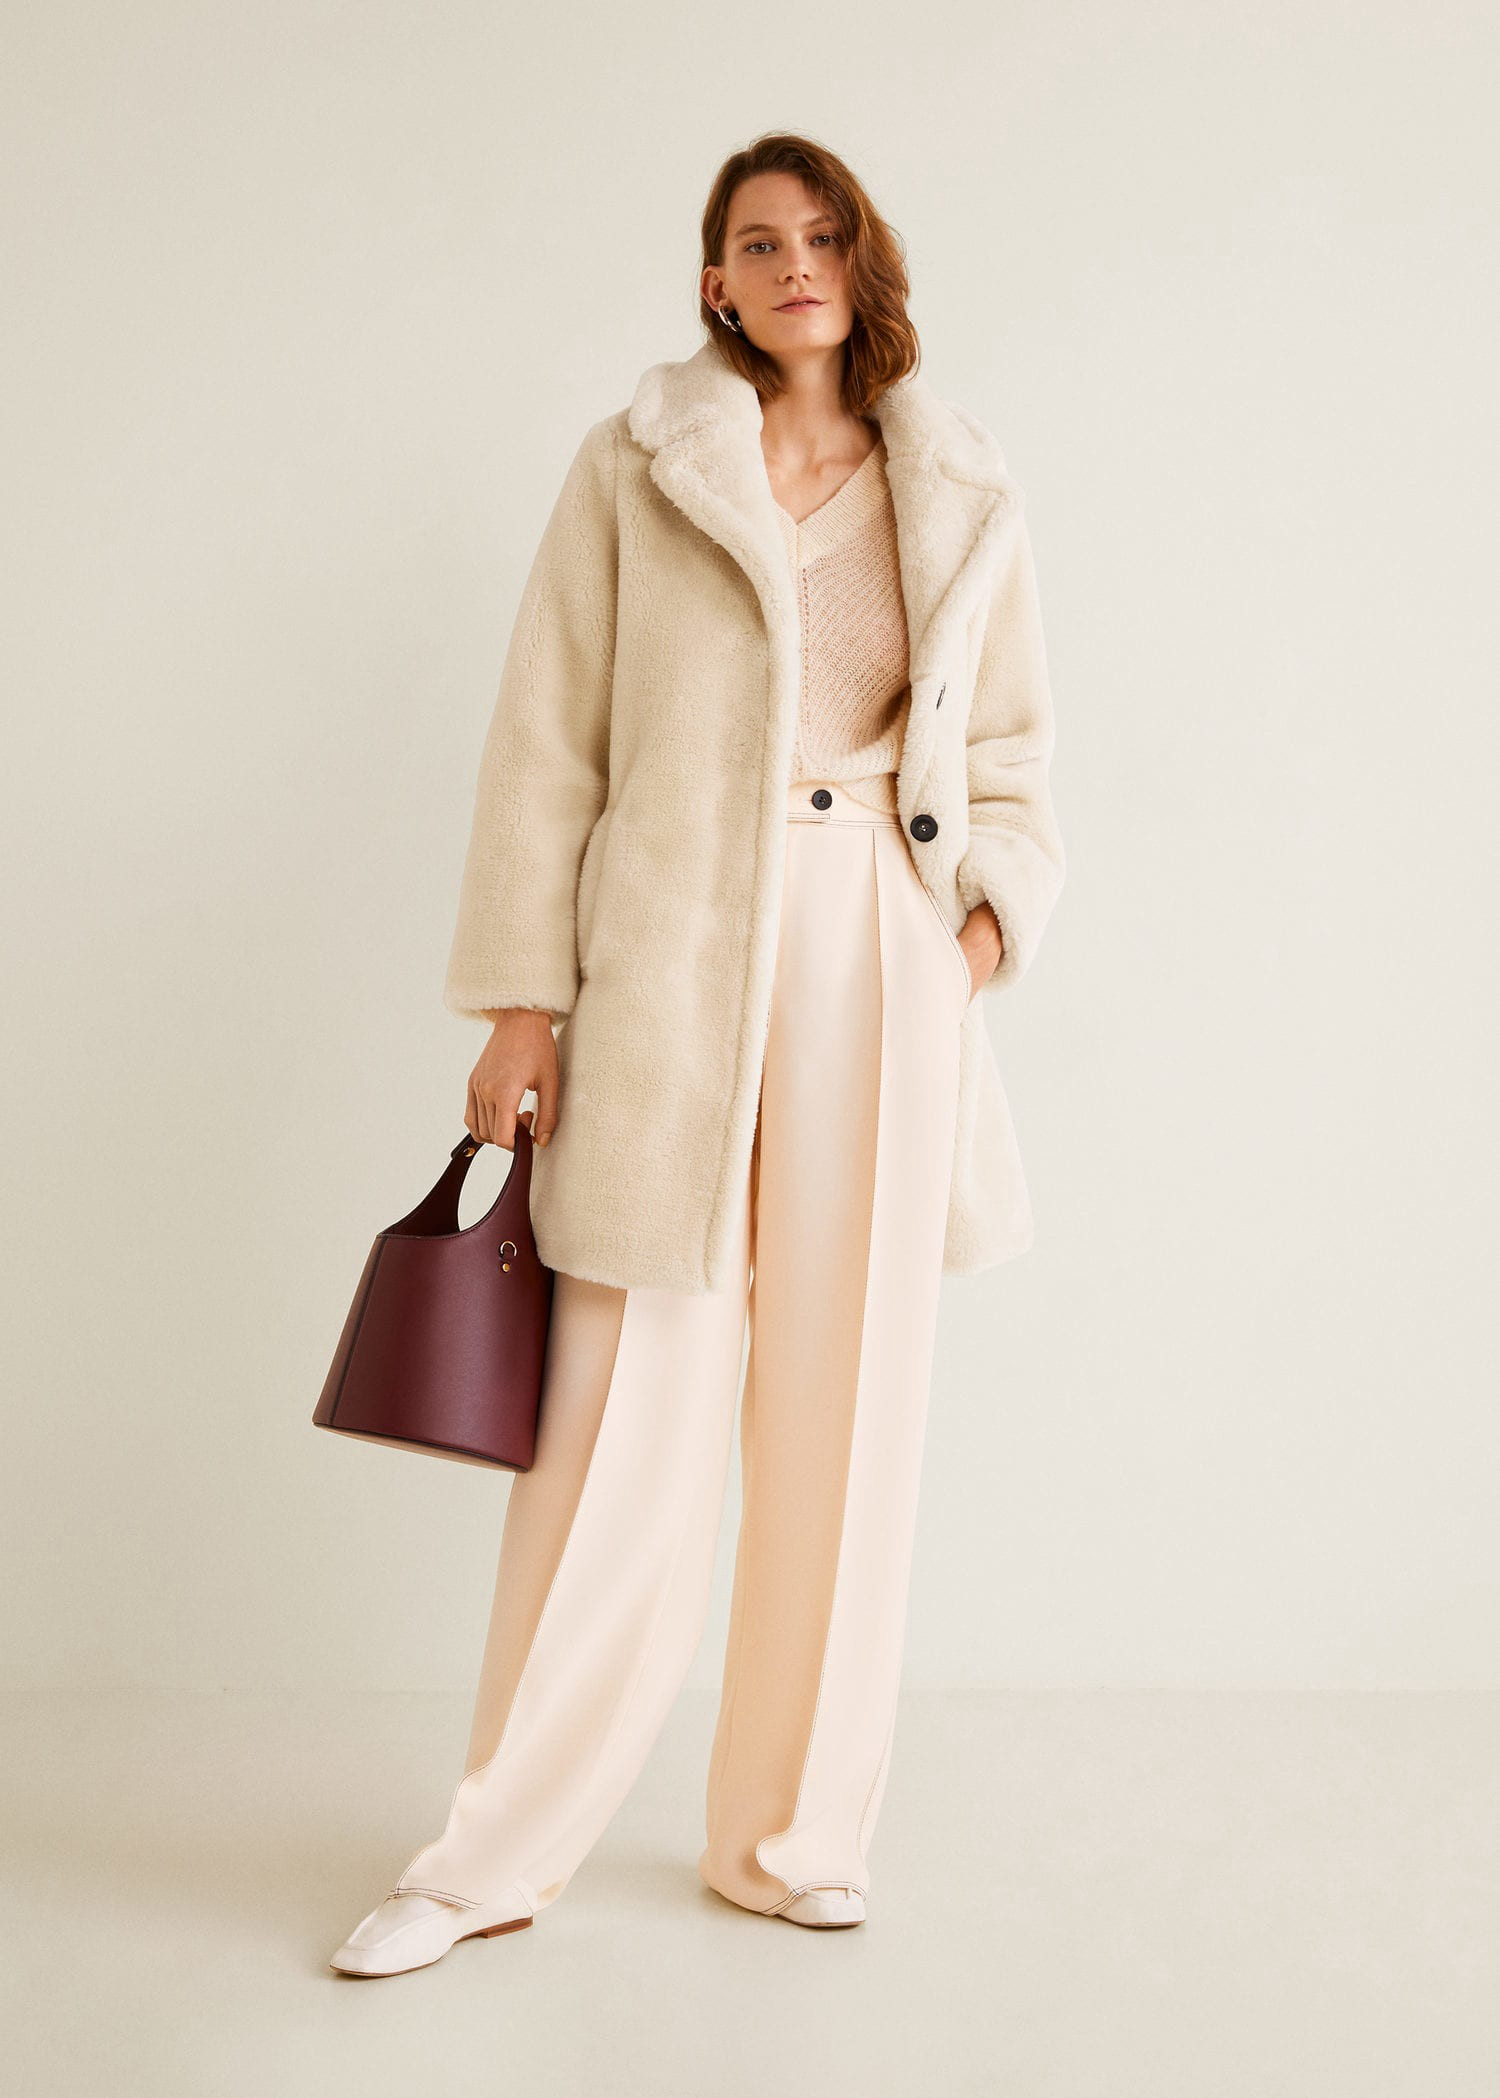 Mango Lapels Faux Fur Coat - Light Pastel Grey S   Products in 2019 ... 20264b723dbb